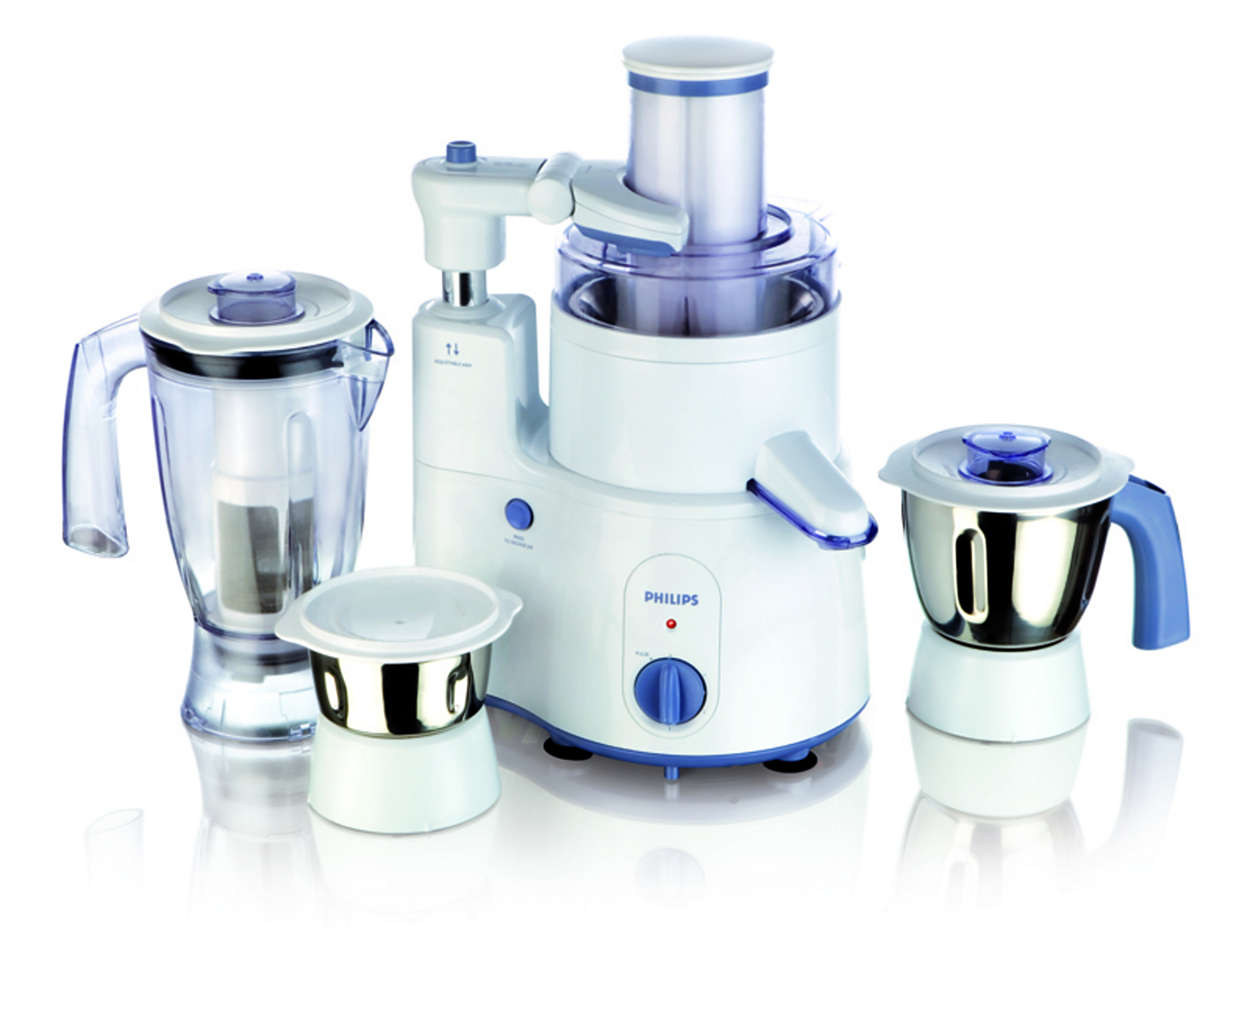 Soup Blender Or Food Processor